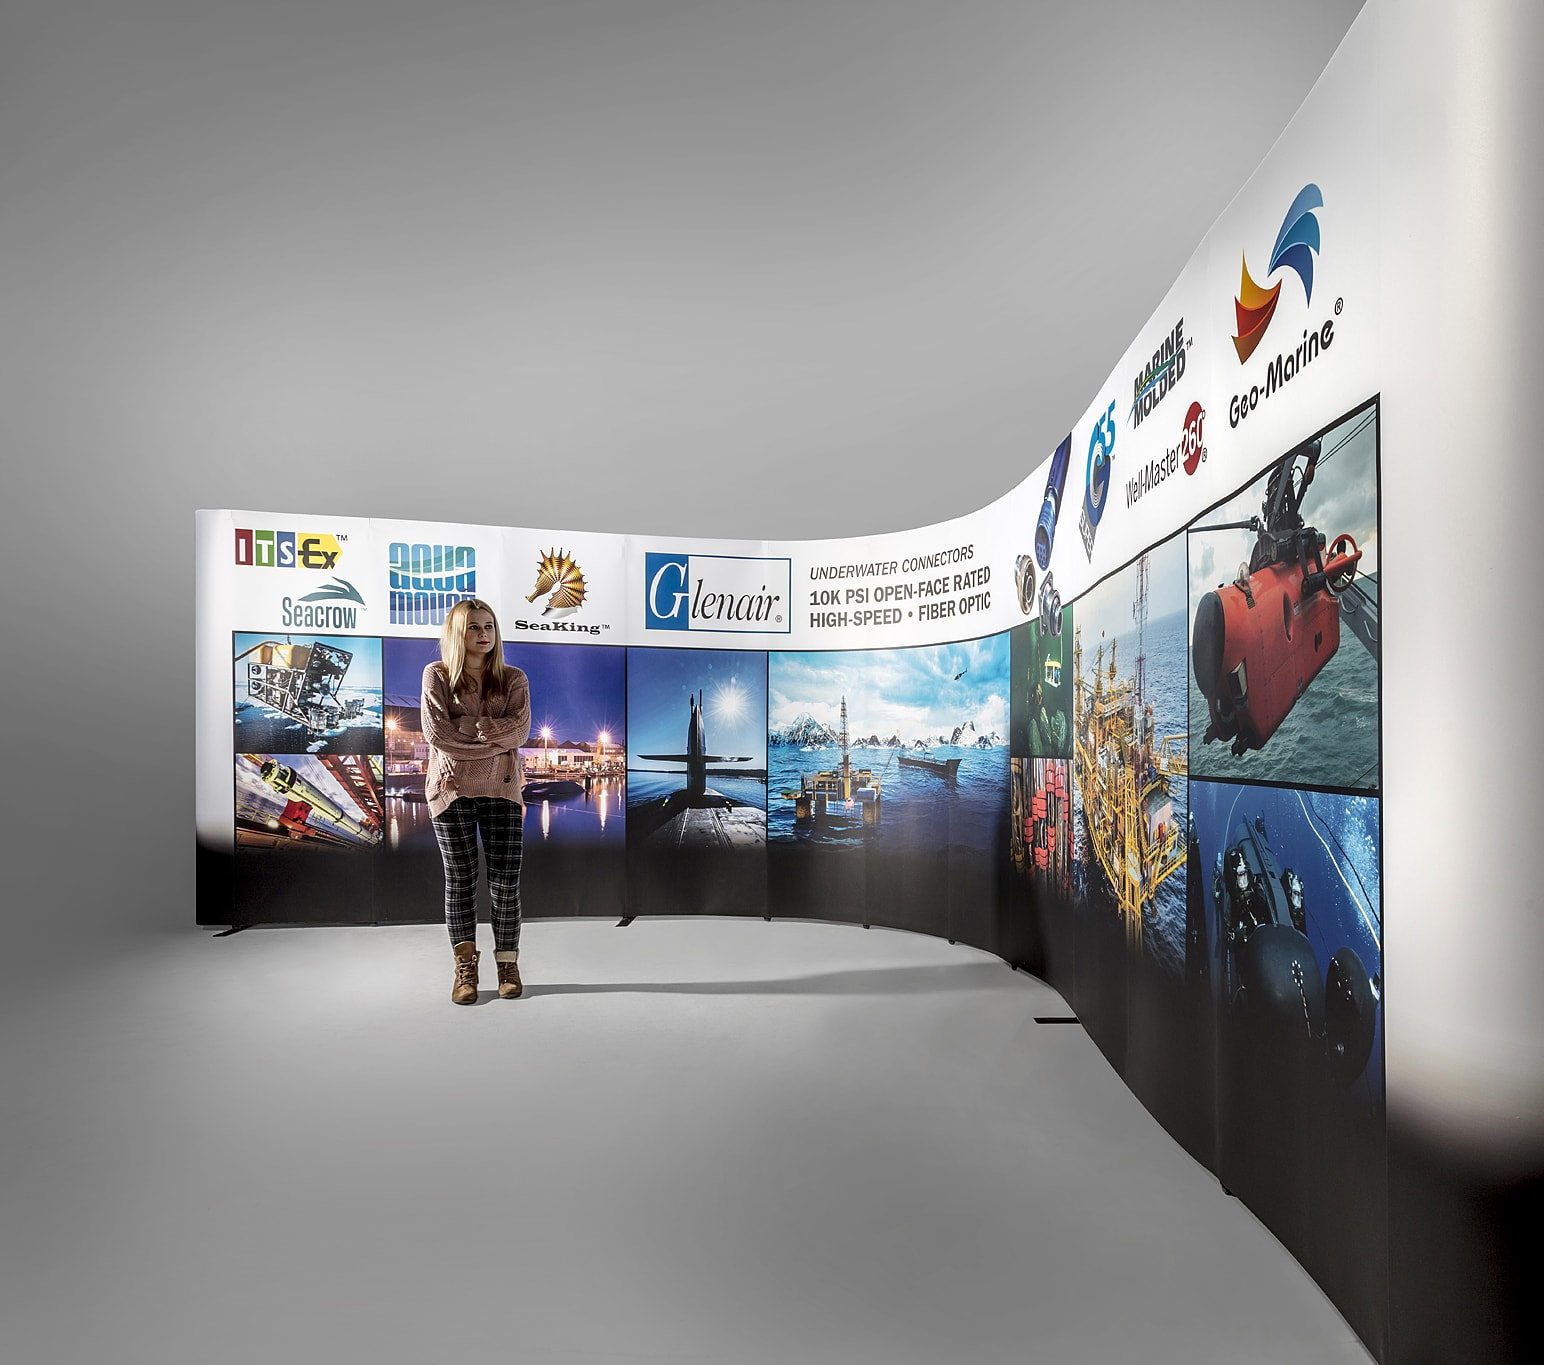 D Exhibition Stand Free Download : Exhibition stand design tips u2013 5 things you should consider ggs